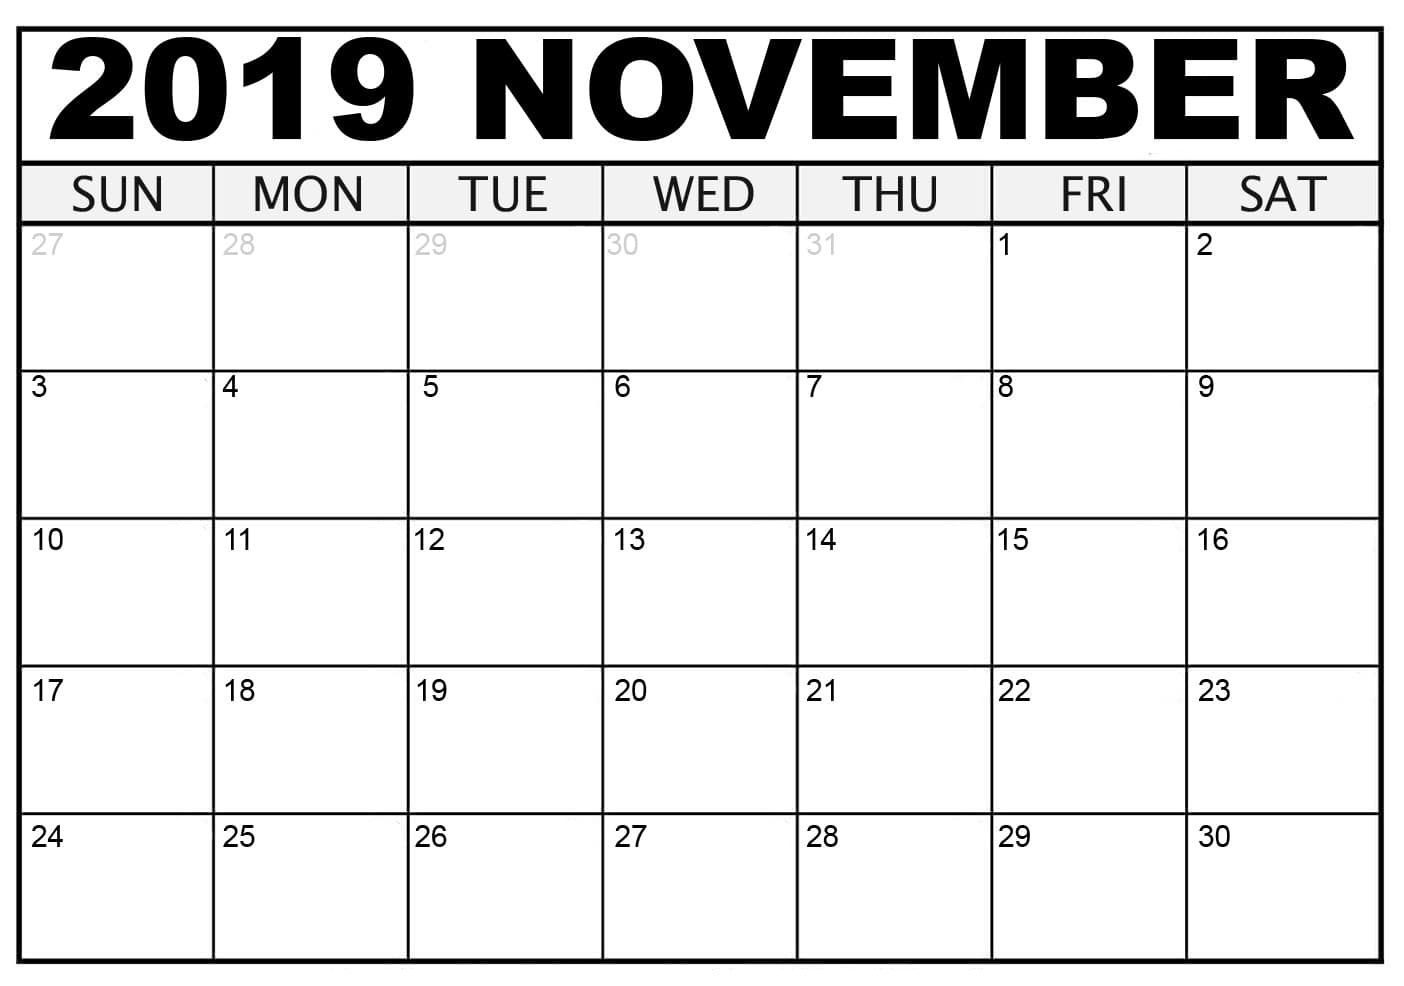 November 2019 Printable Calendar - Free Blank Templates - Calendar intended for Free 8/2019 -5/ 2020 Printable Calendar